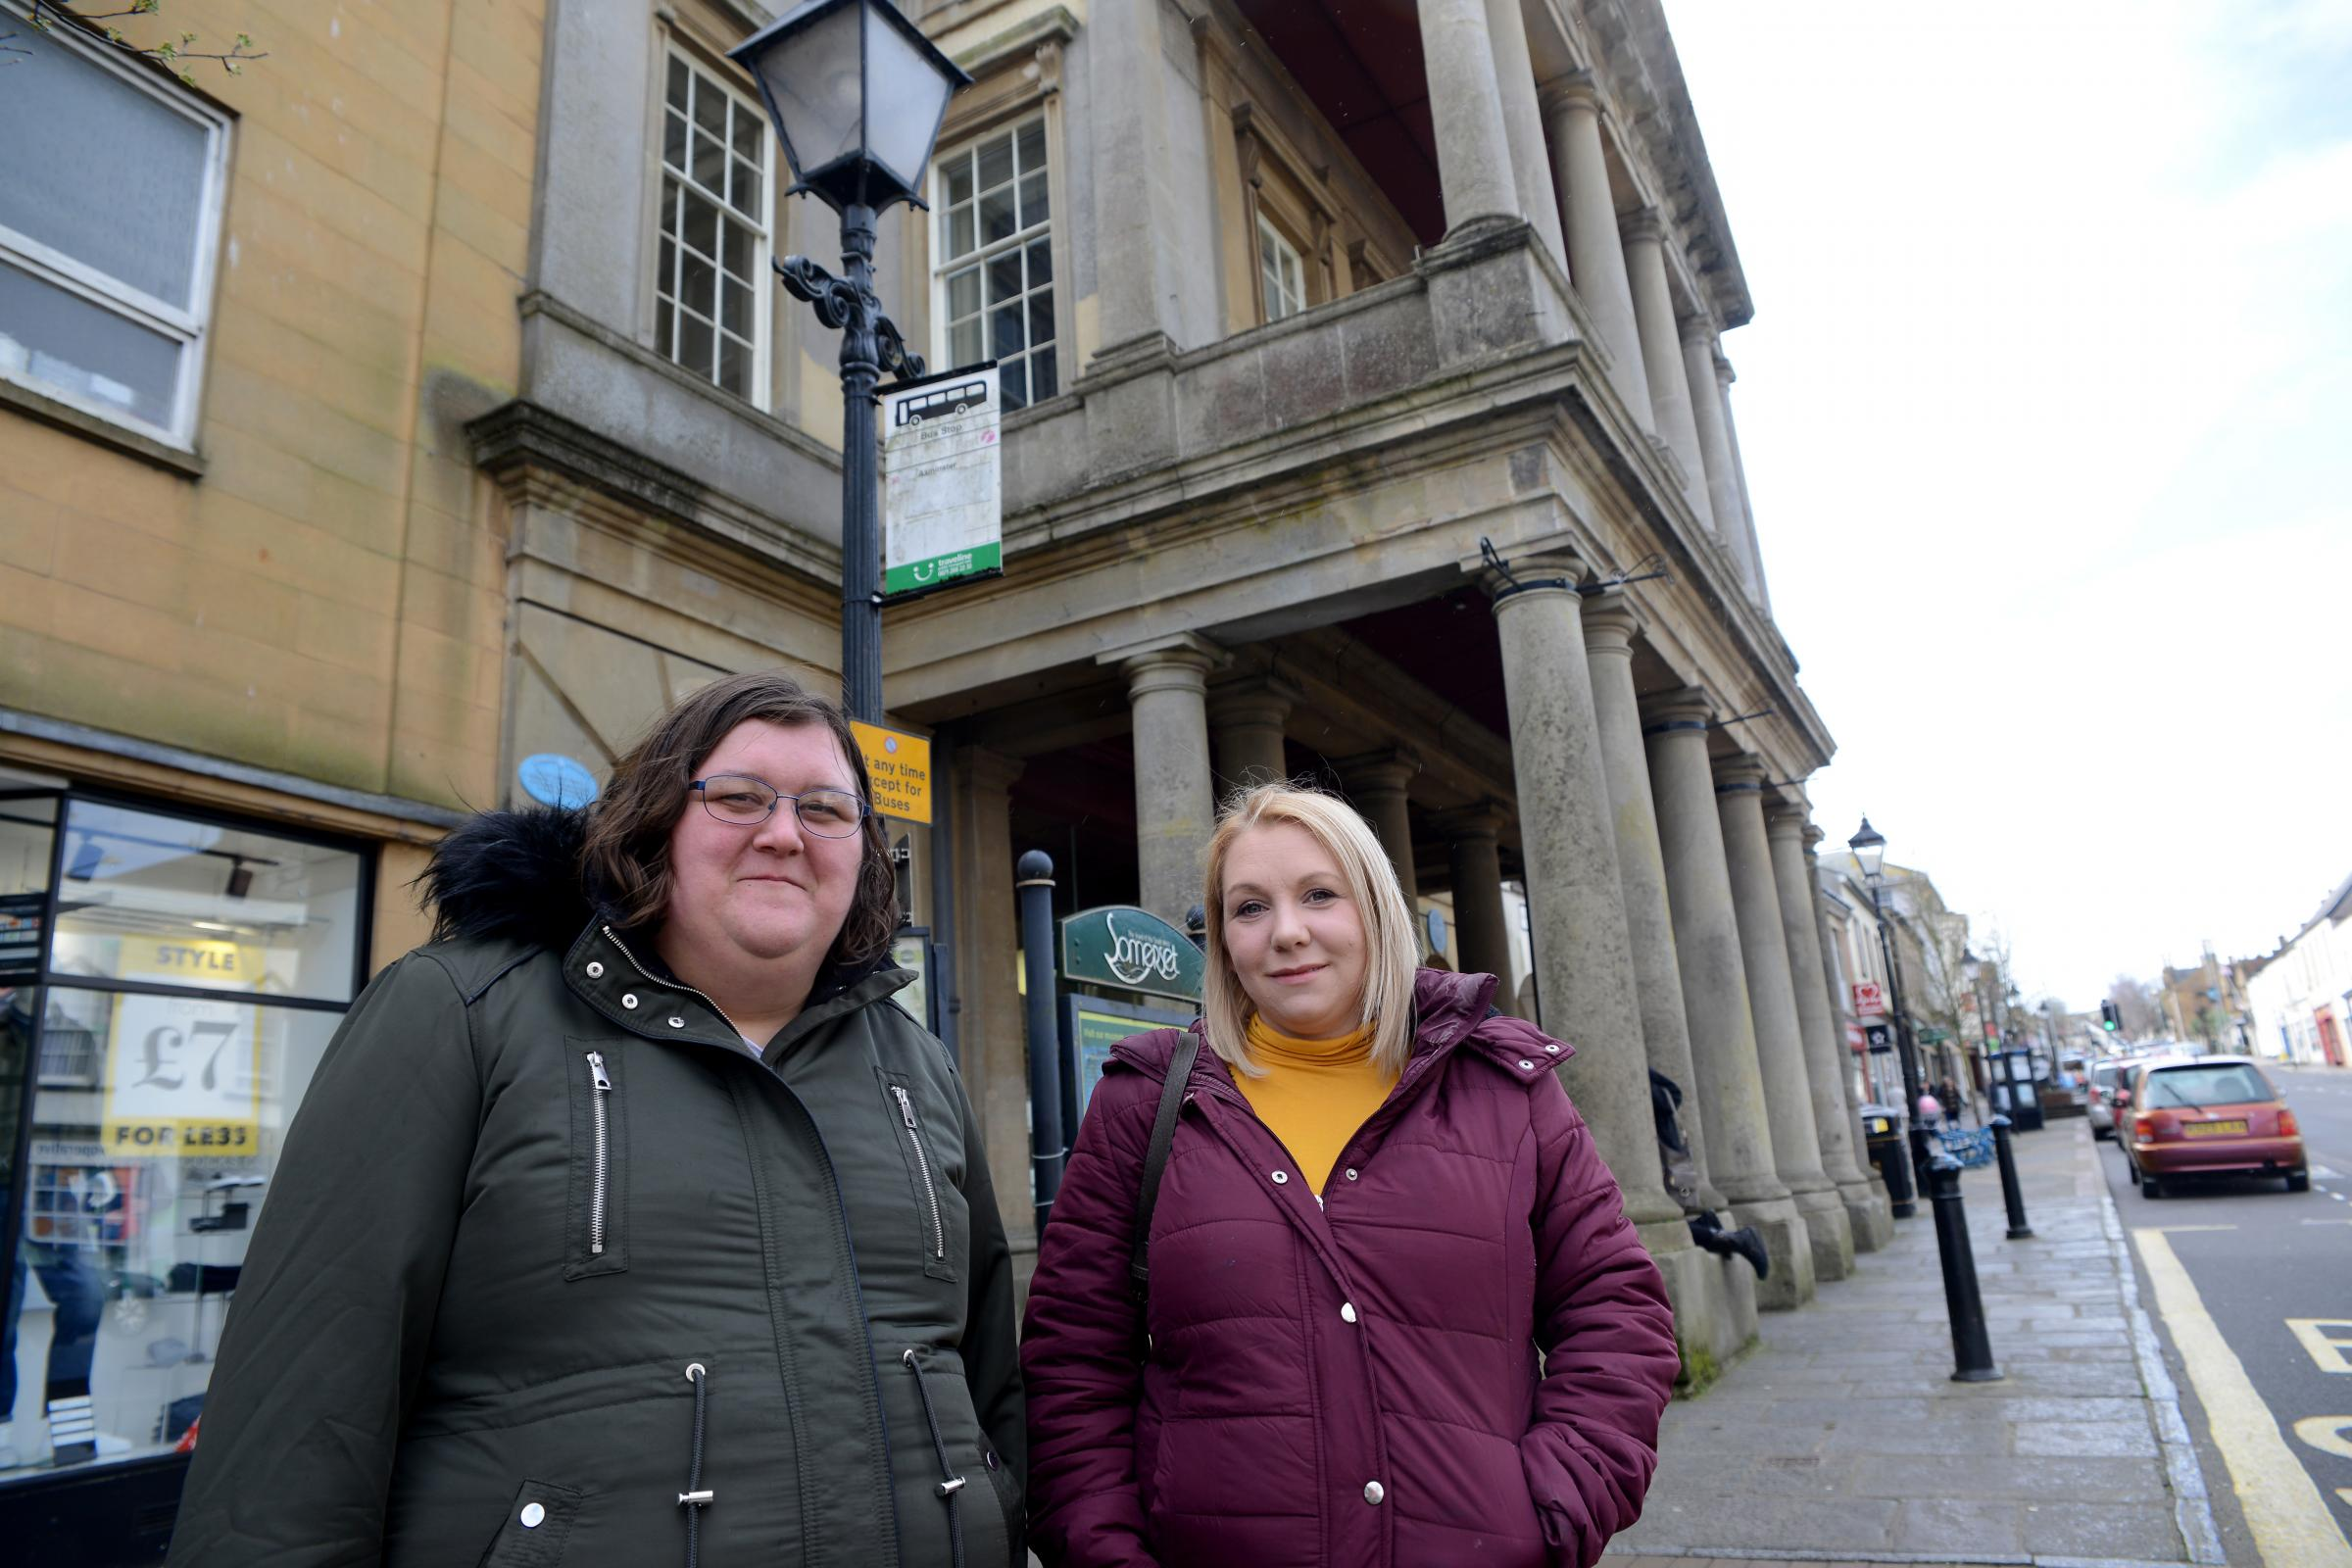 Local resident Faye Mitchell with Melissa Whittaker-Mather are dissapointed with the response they have had from the County Council after submitting a petition for a better bus service.